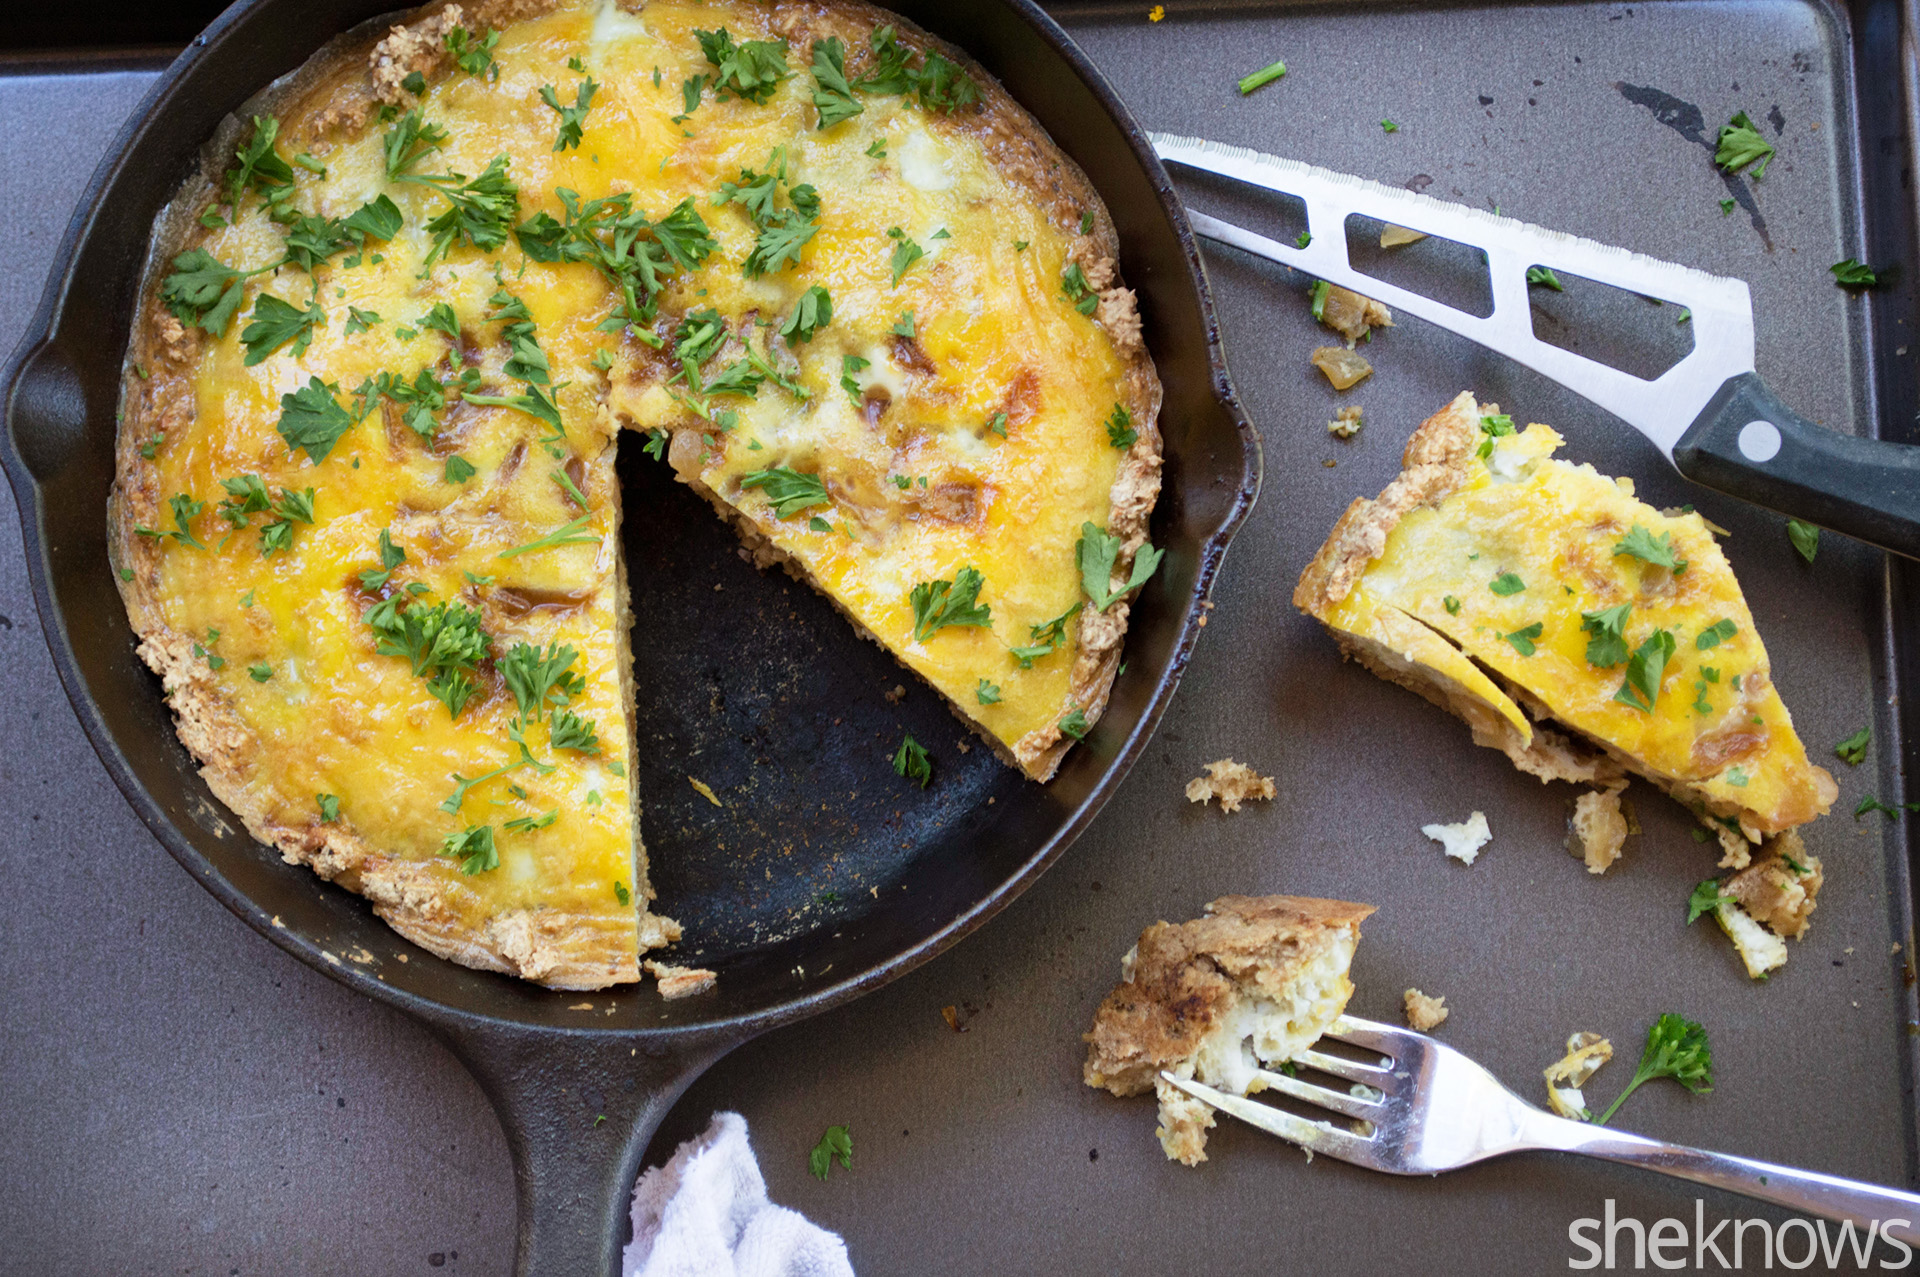 Caramelized onion quiche perfect for easy gluten-free entertaining